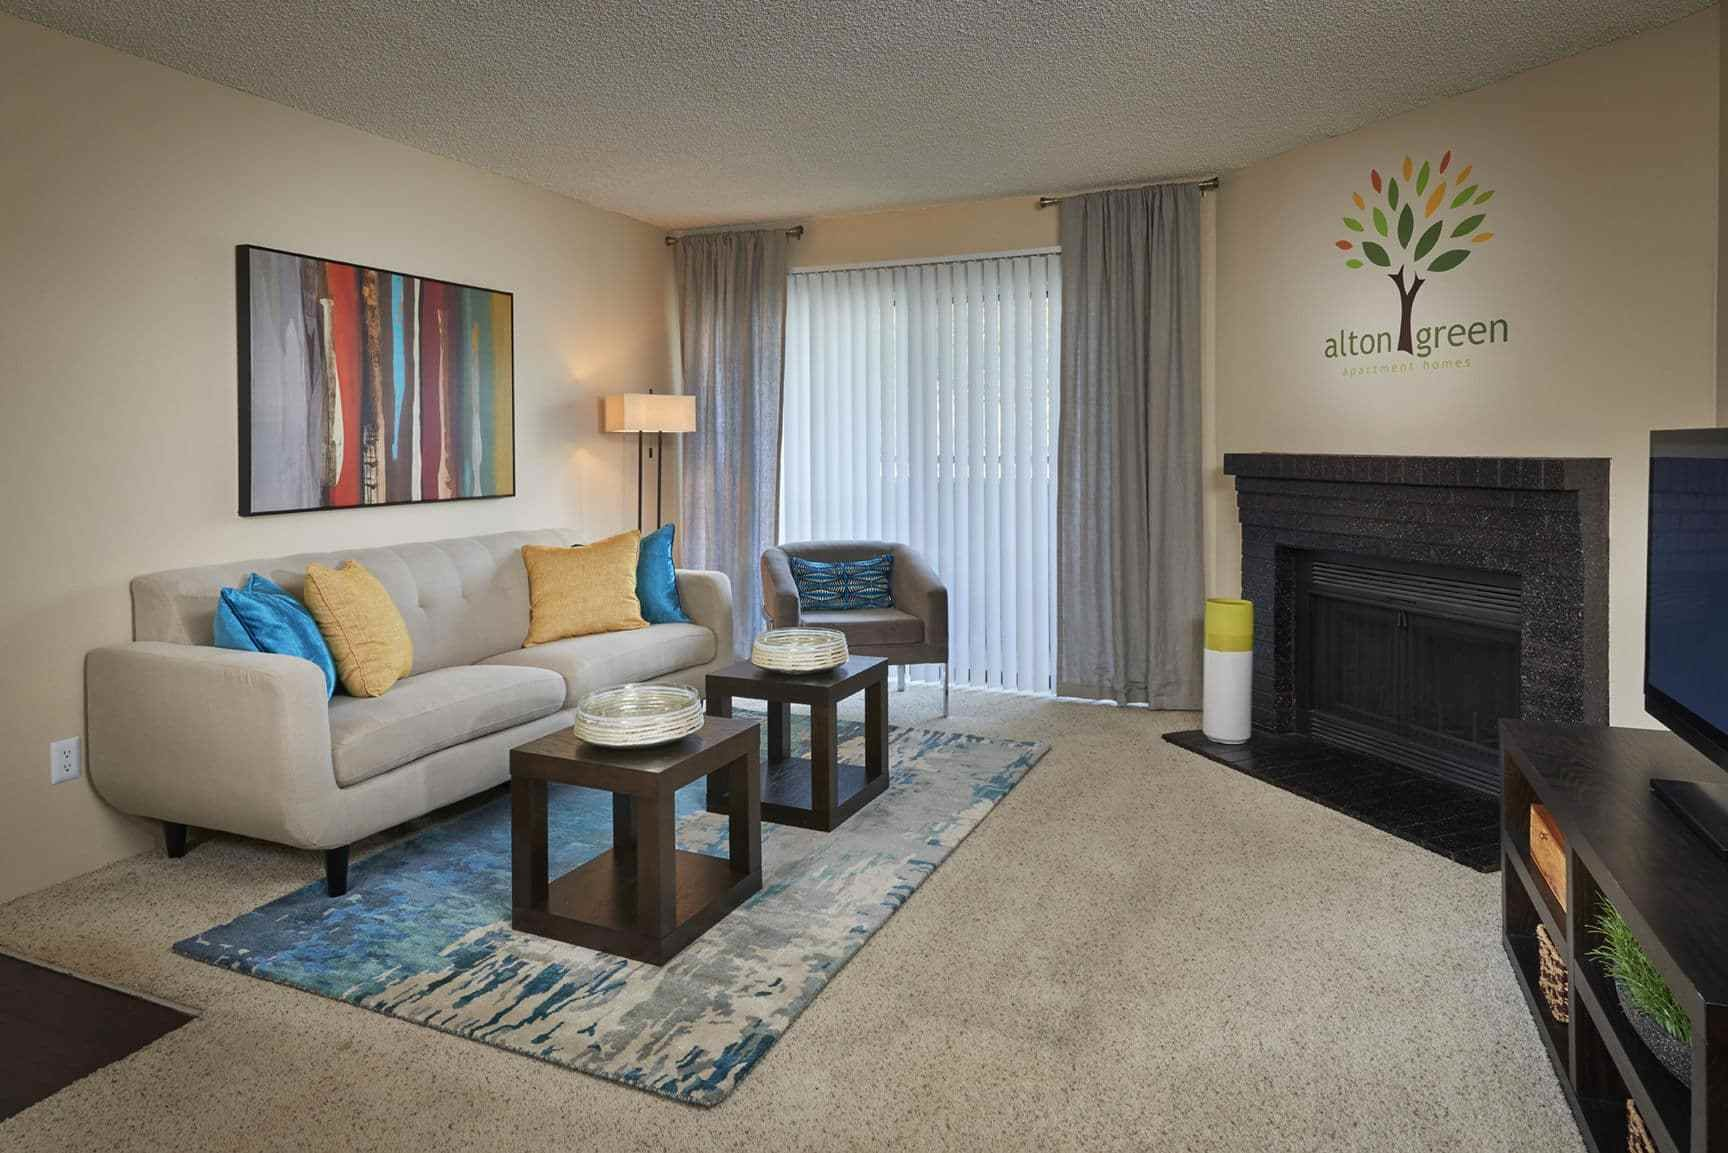 Best Southeast Denver Co Apartments Near Aurora Alton Green With Pictures